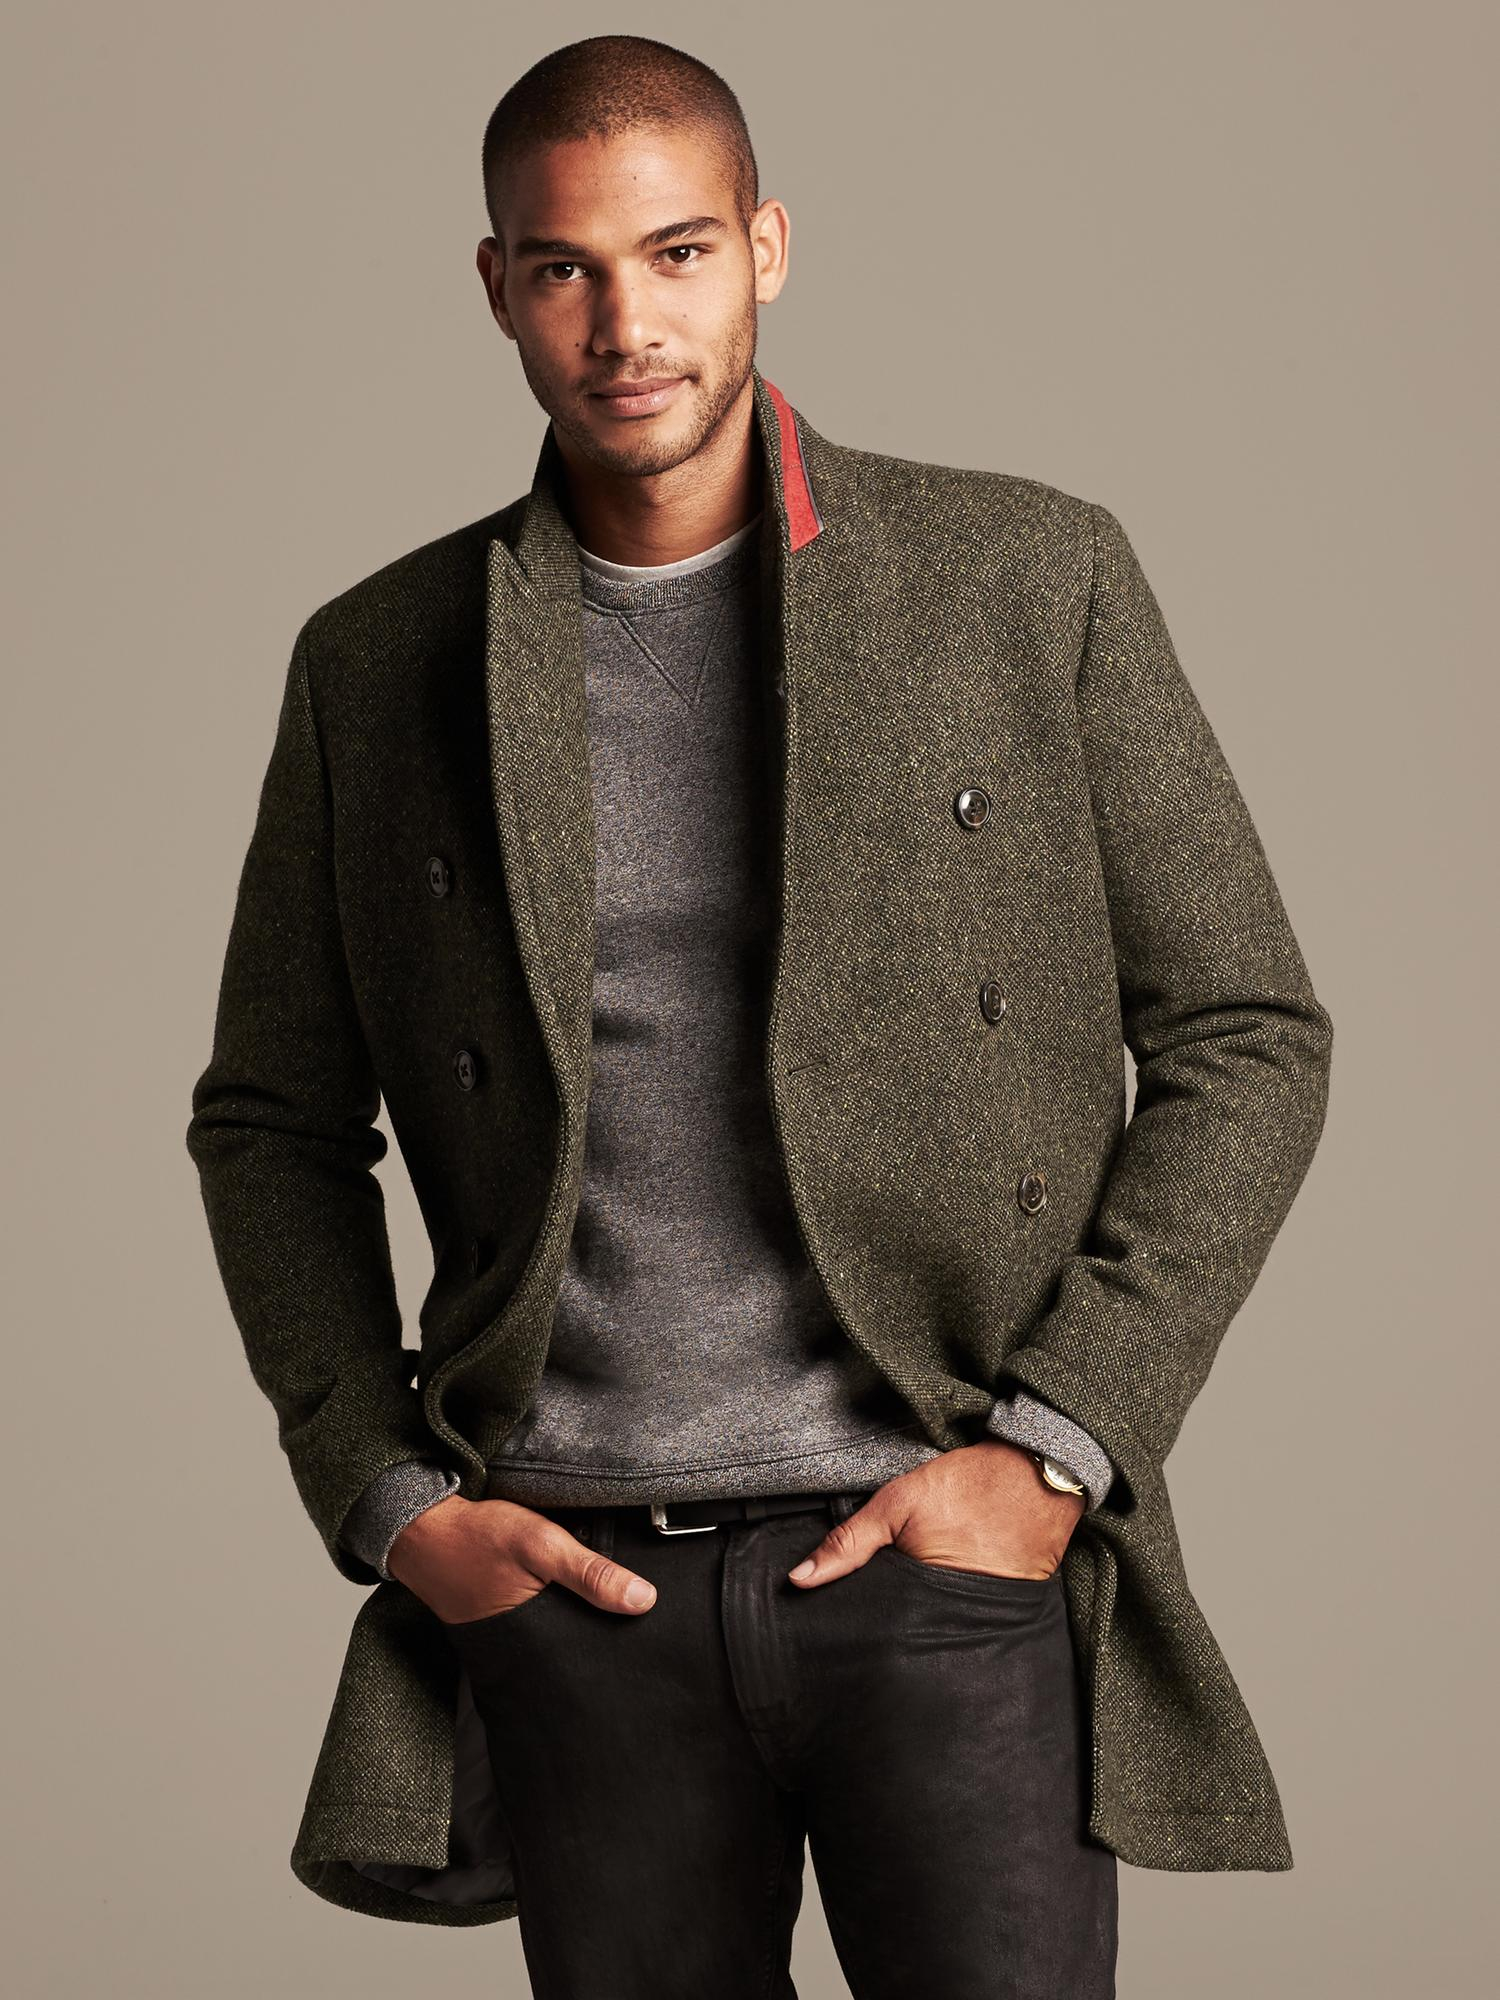 Elevate any wardrobe with Men's Jackets & Coats from Banana Republic Factory. Browse an incredible selection of the latest Jackets for Men and find a great fit for any individual style. Create your next great look today with stylish Men's Jackets & Coats from Banana Republic Factory. Find versatile Jackets for Men that will complement your unique personality.